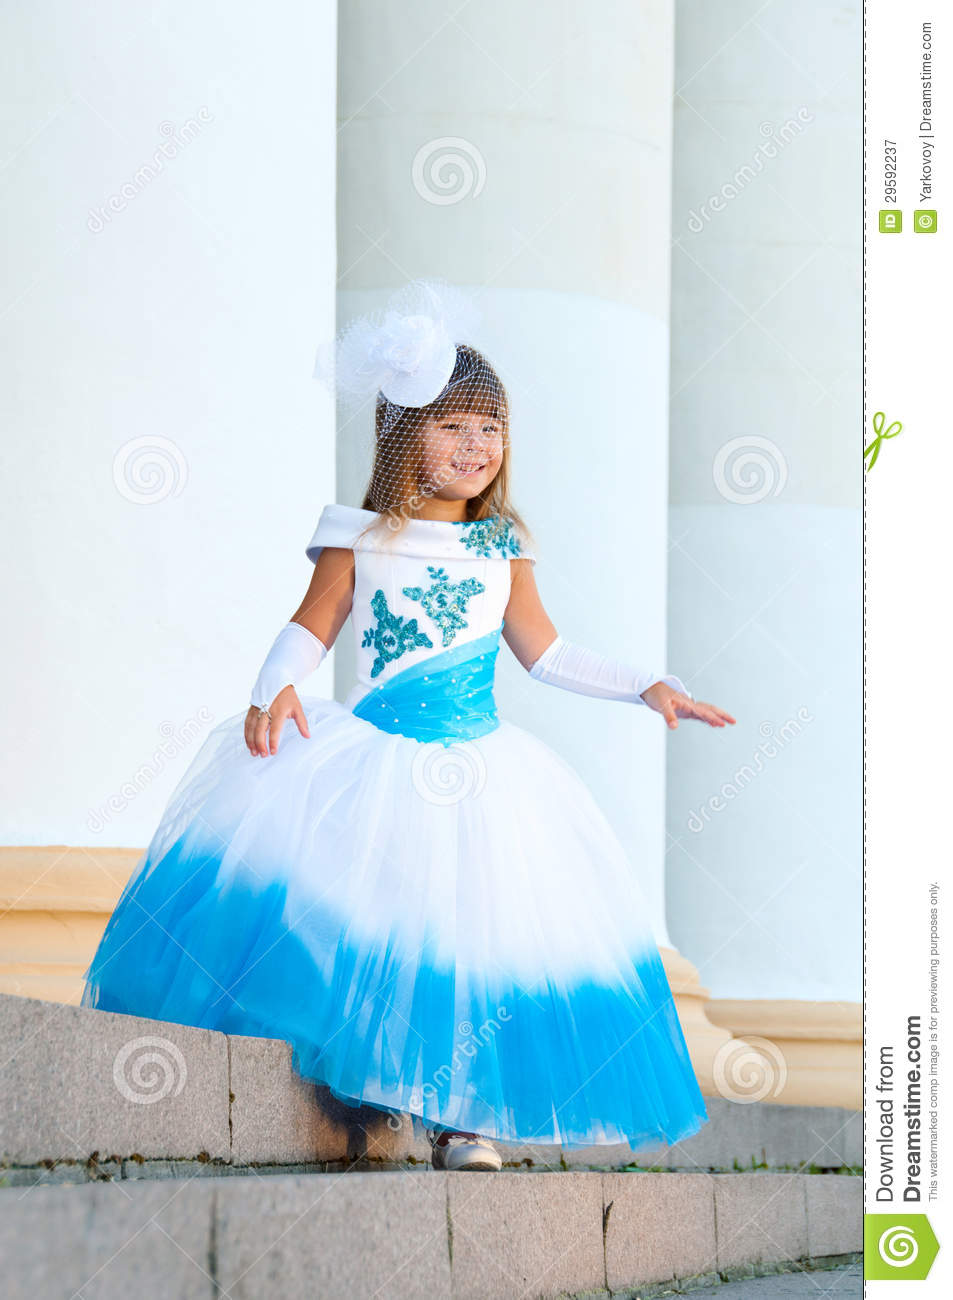 Robe petite fille mariage turquoise